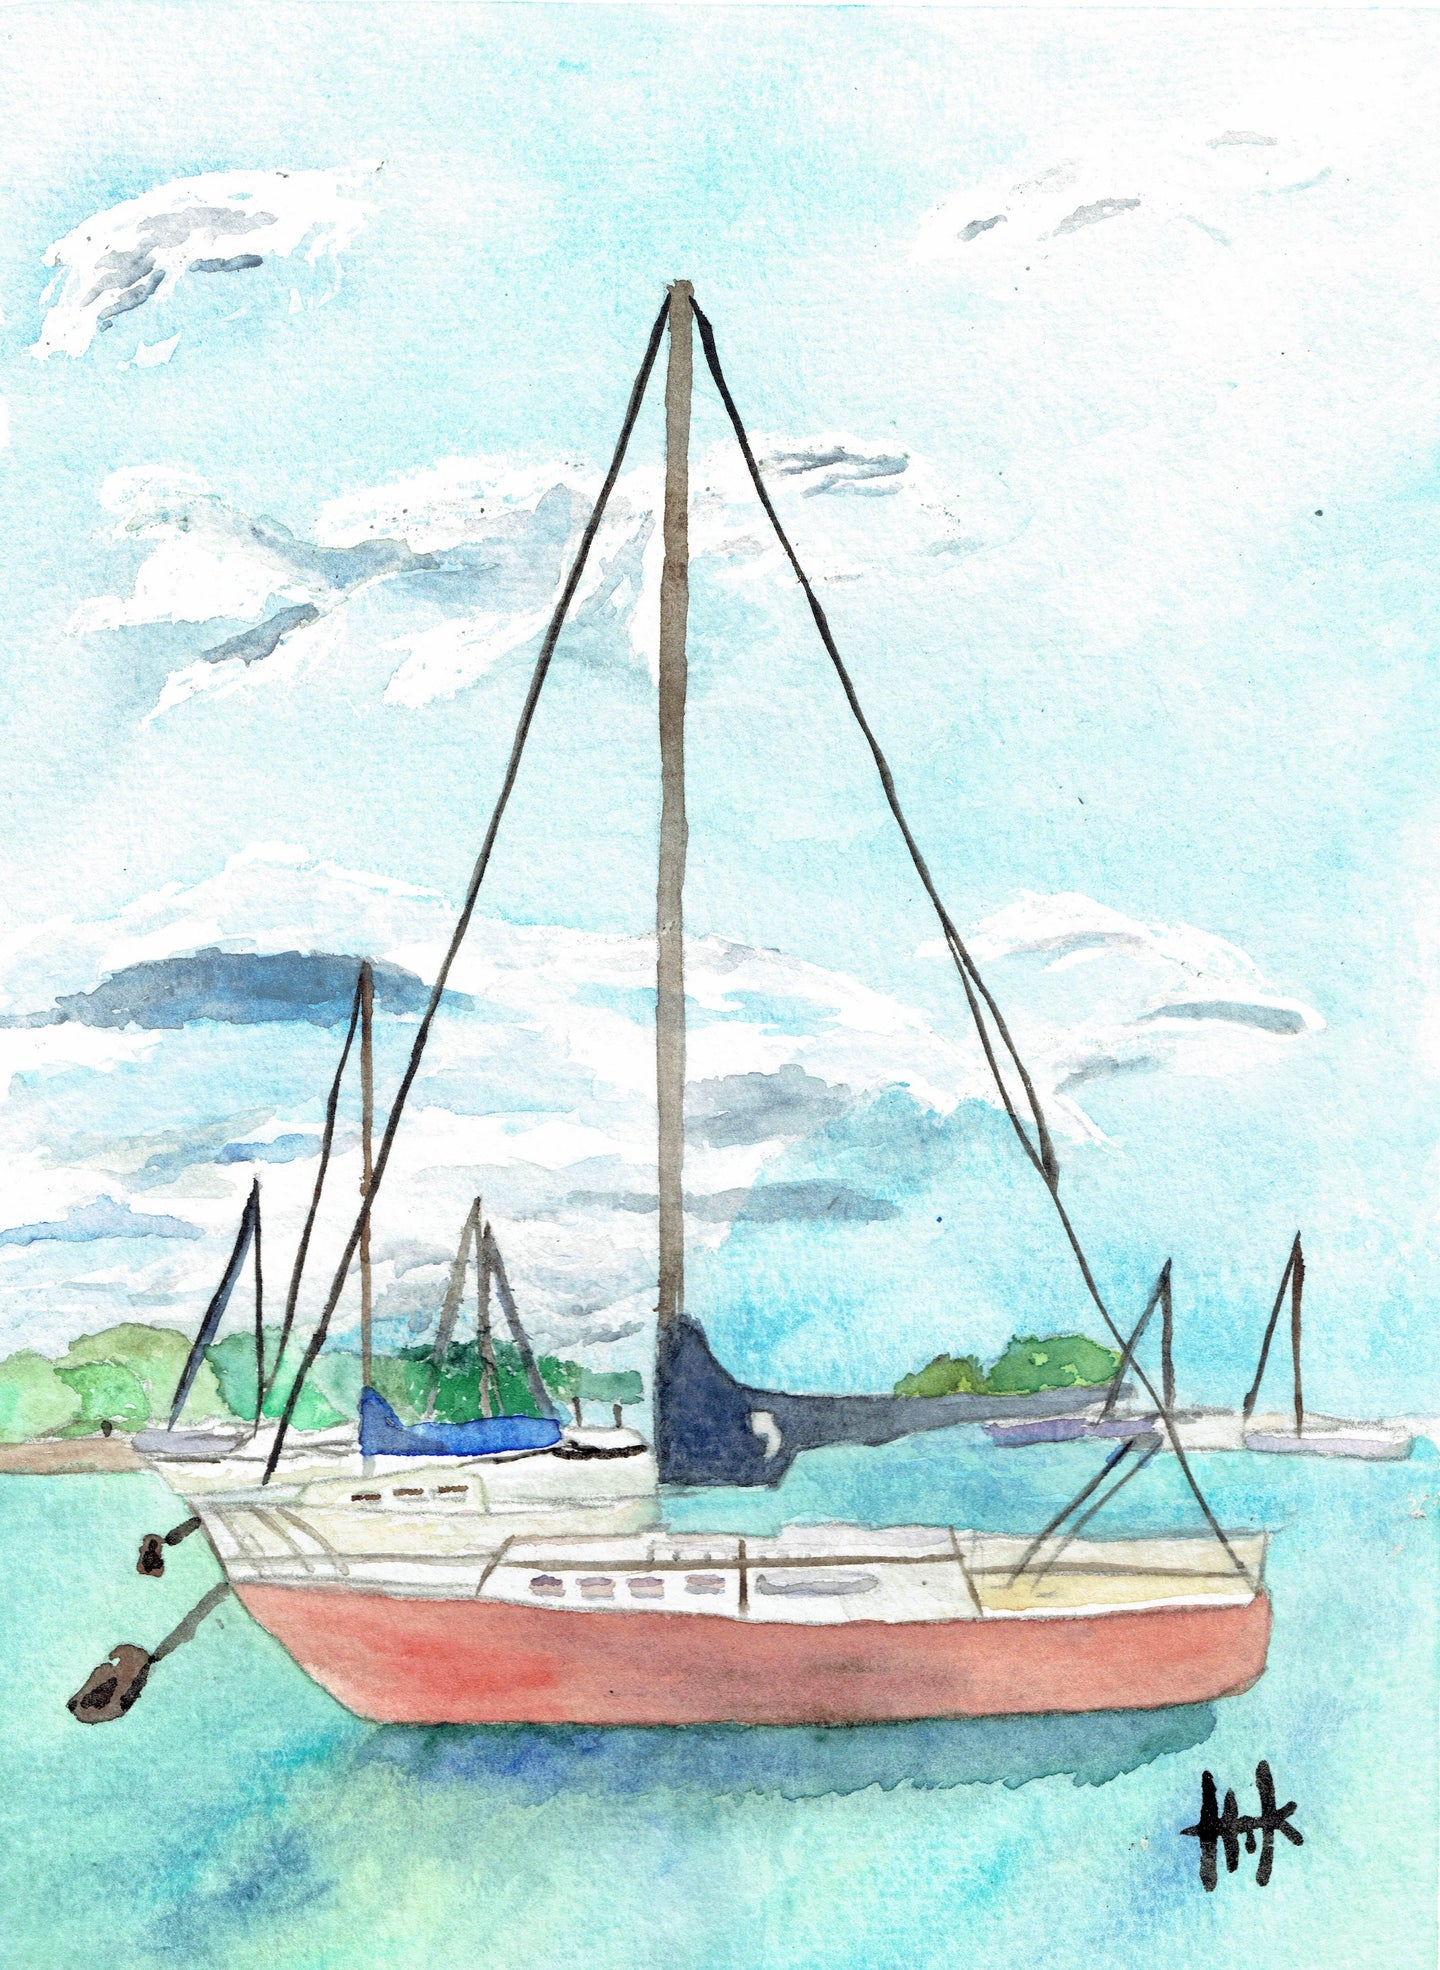 RED SAILBOAT AT ANCHOR - PRINT